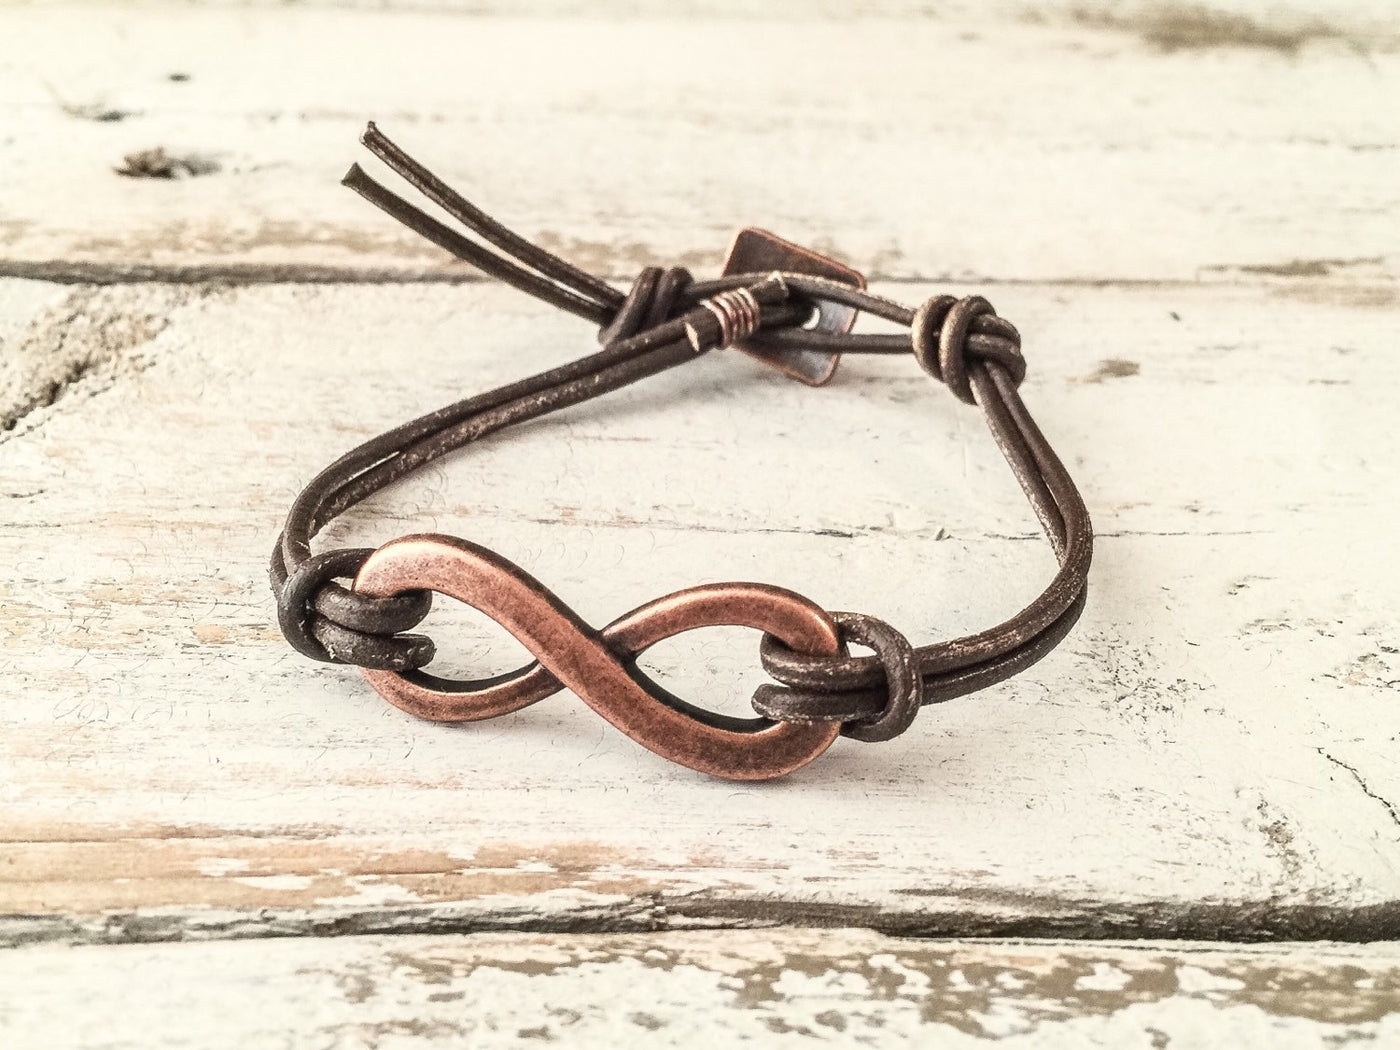 Boho Infinity Friendship Leather Simple Friends Forever Unisex Couple Gift Bracelet, Rustic Distressed Earthy Man Woman Guy Girl Bracelet